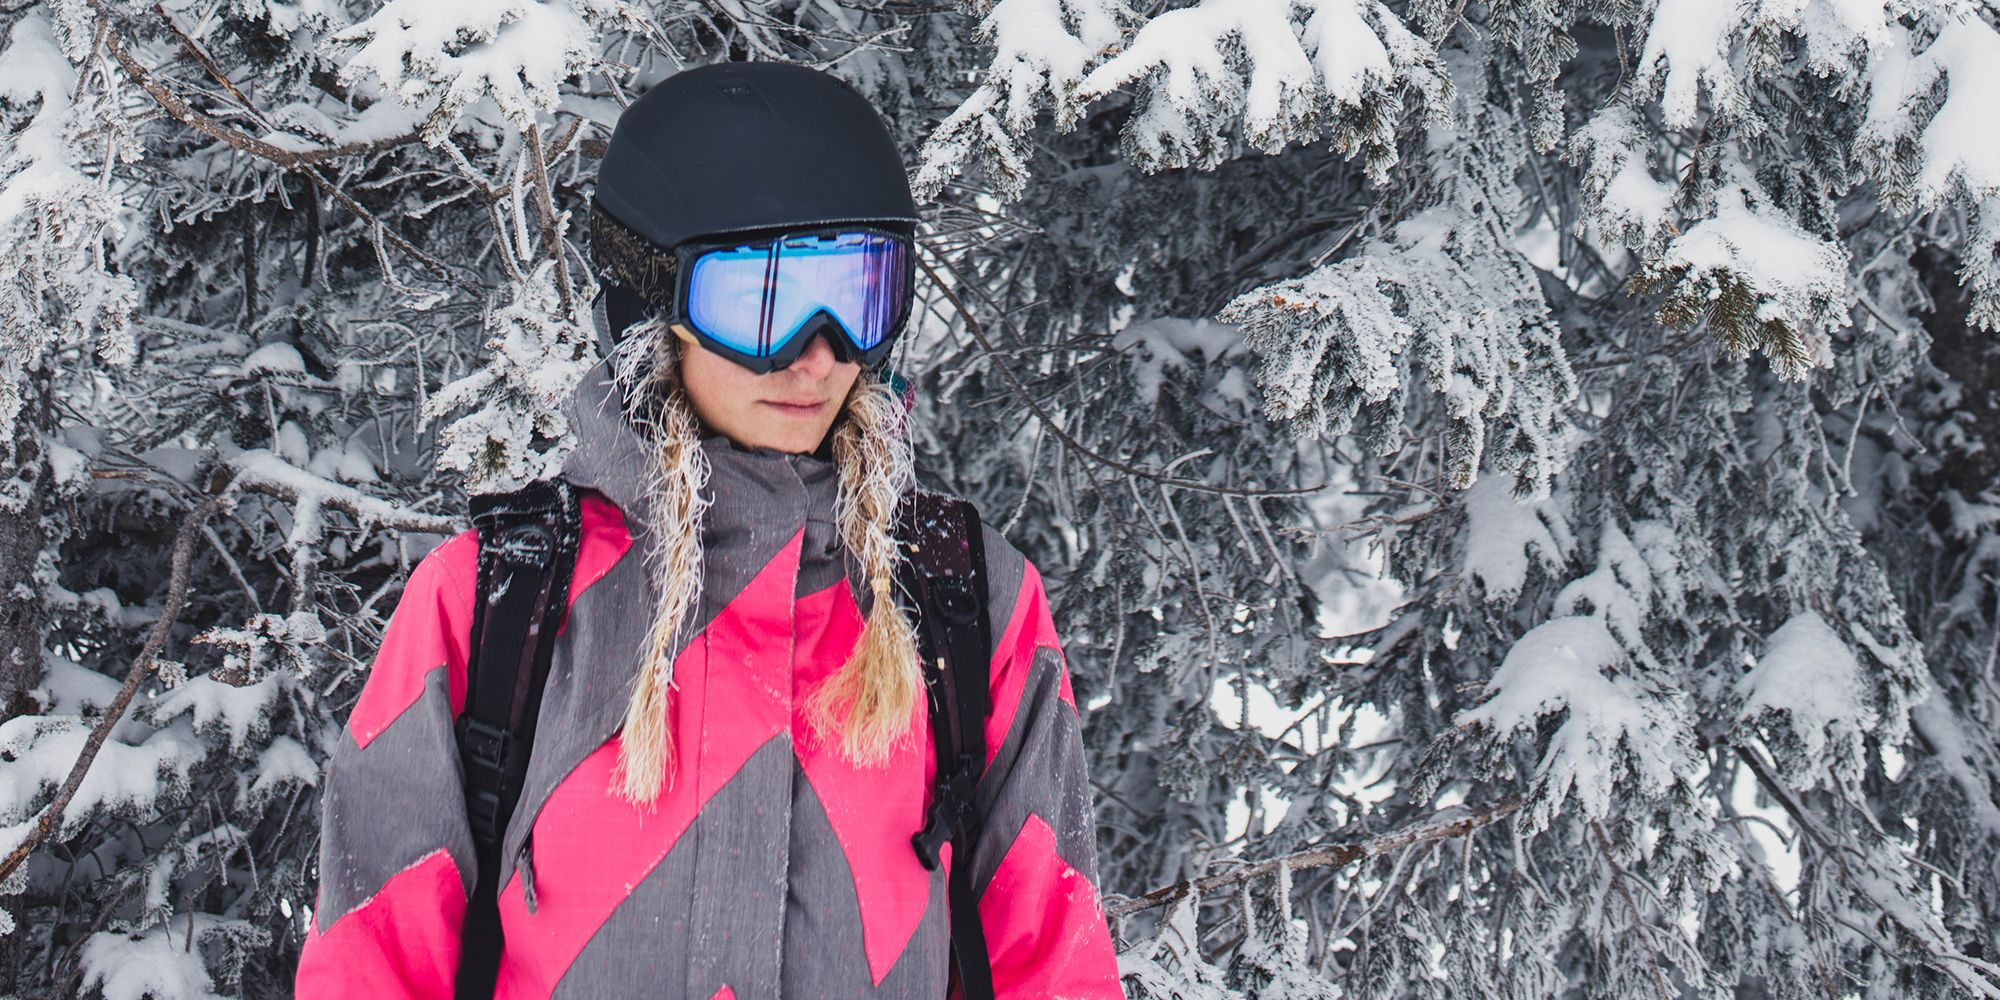 11 Best Ski and Snowboard Helmets for the 2020 Winter Season